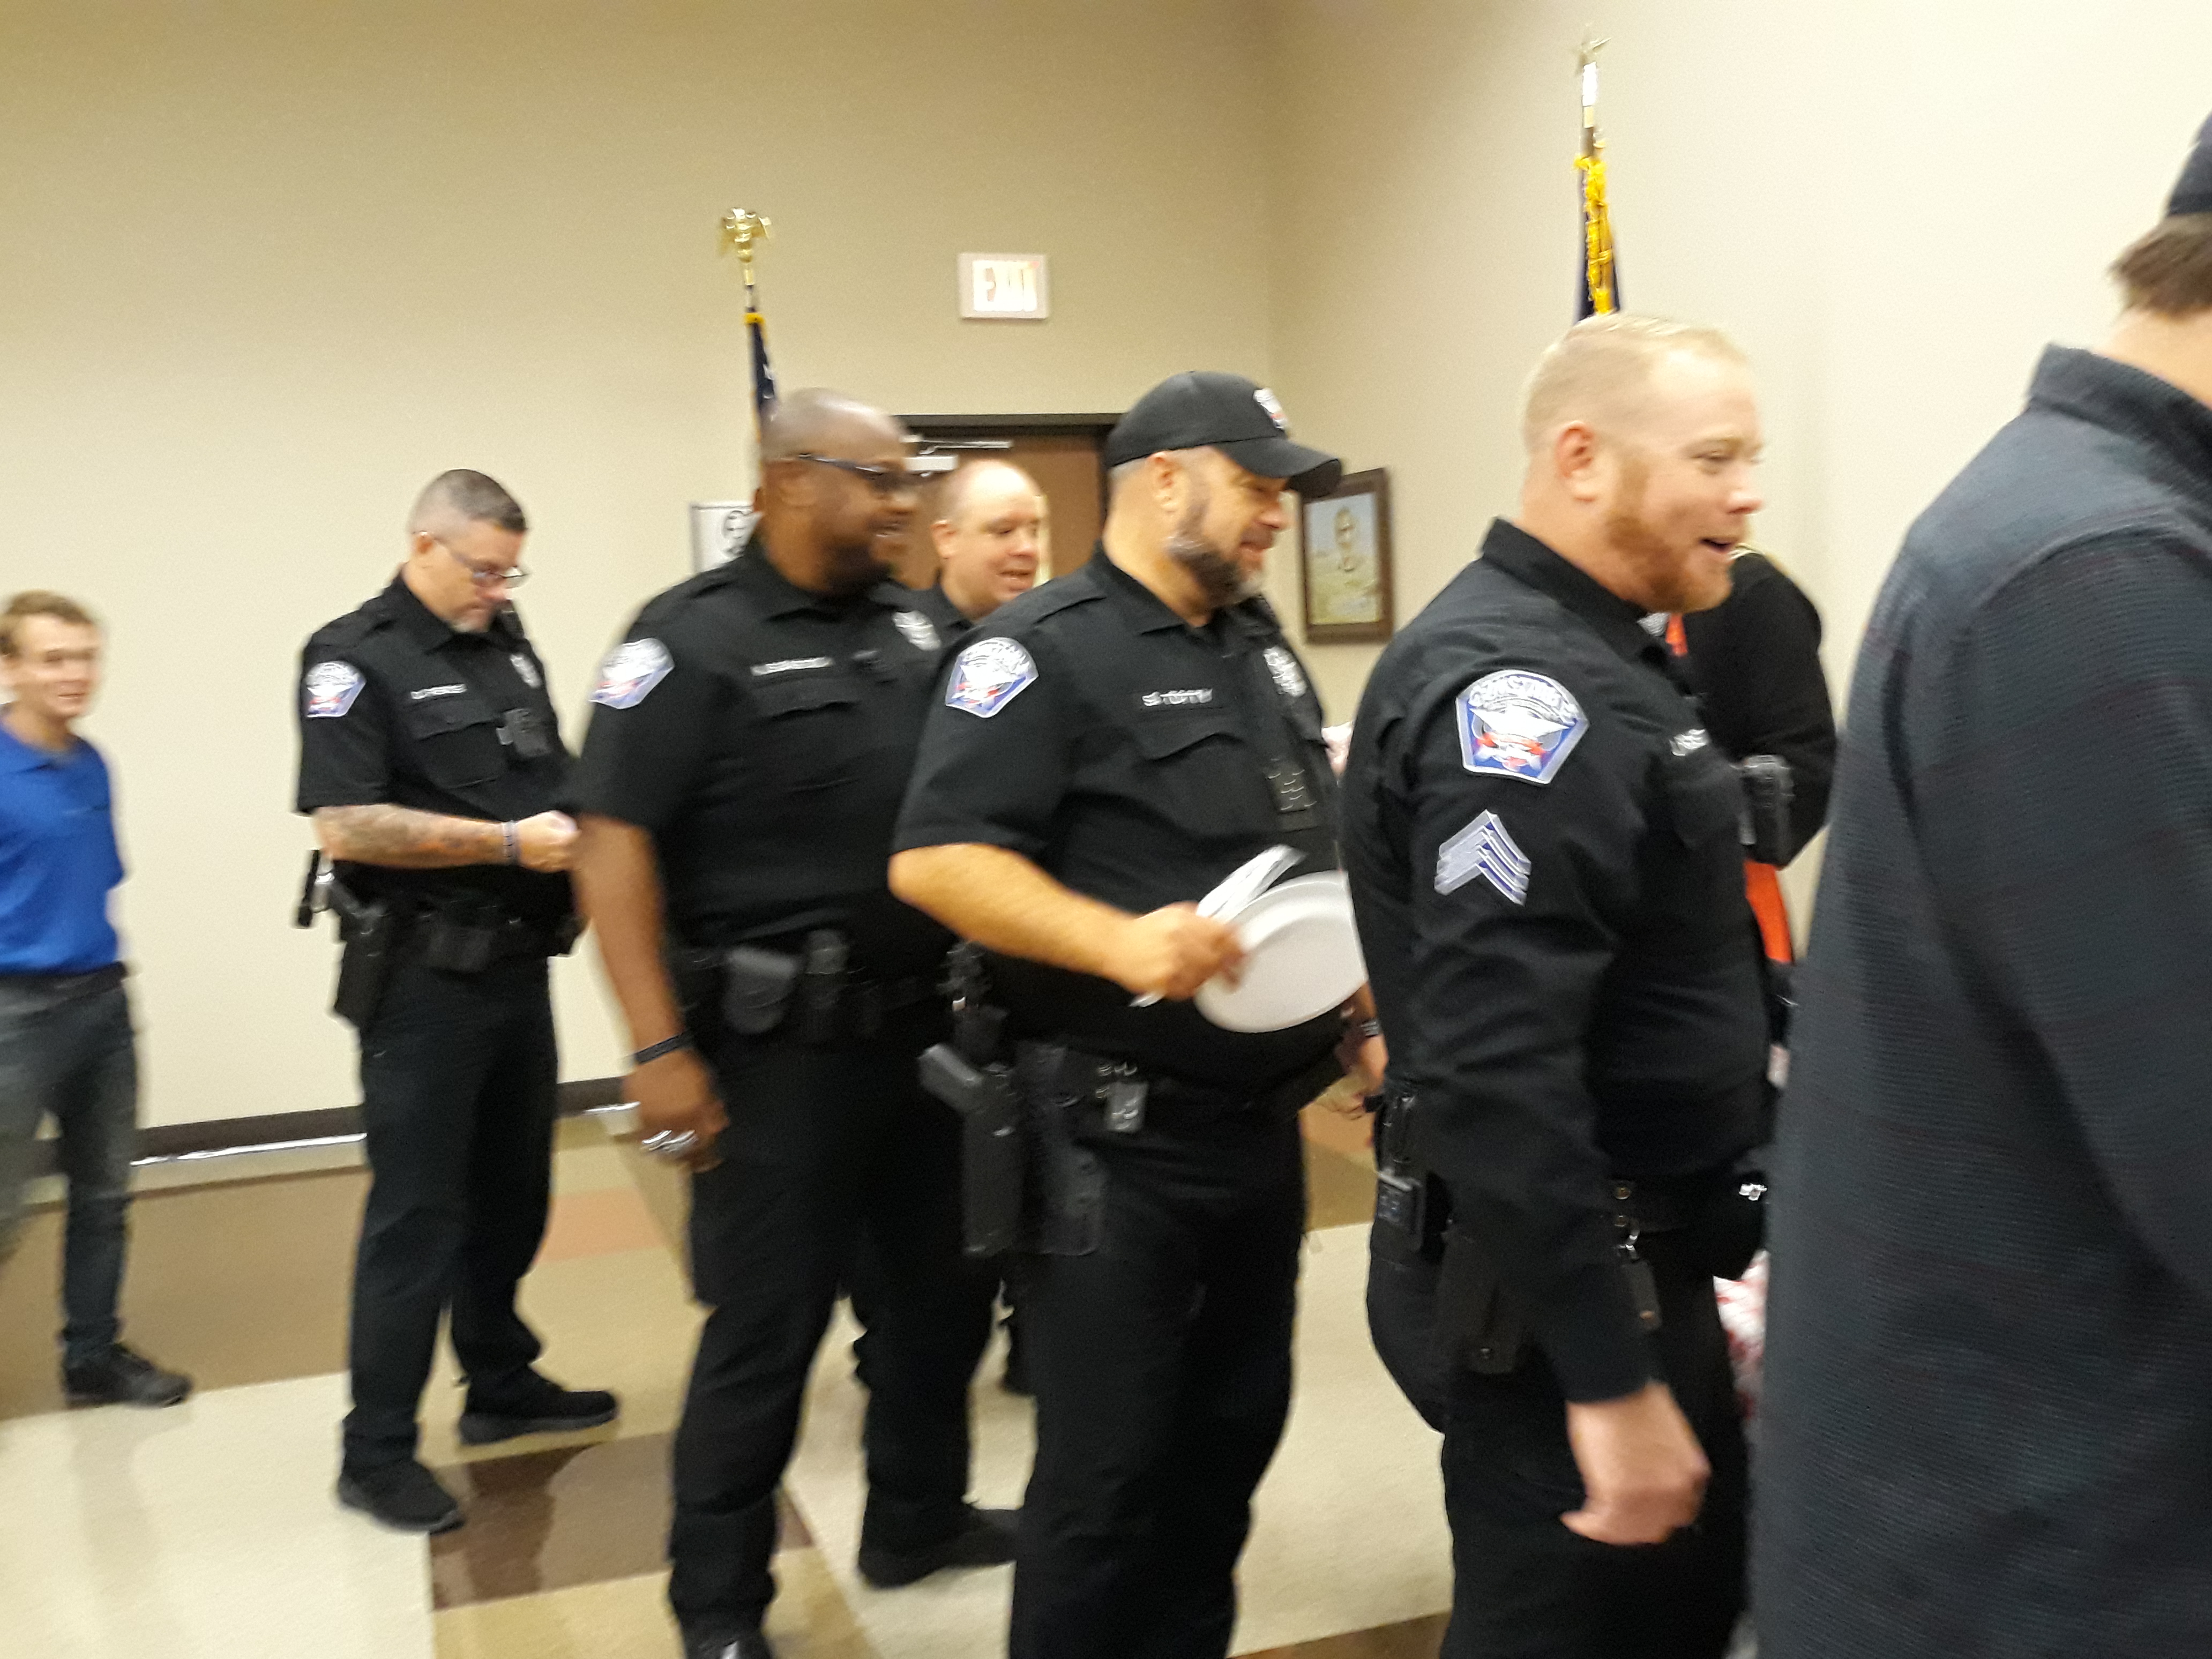 Shown standing in the lunch line are Wilco Pct. 1 Constable Deputies and other guests.